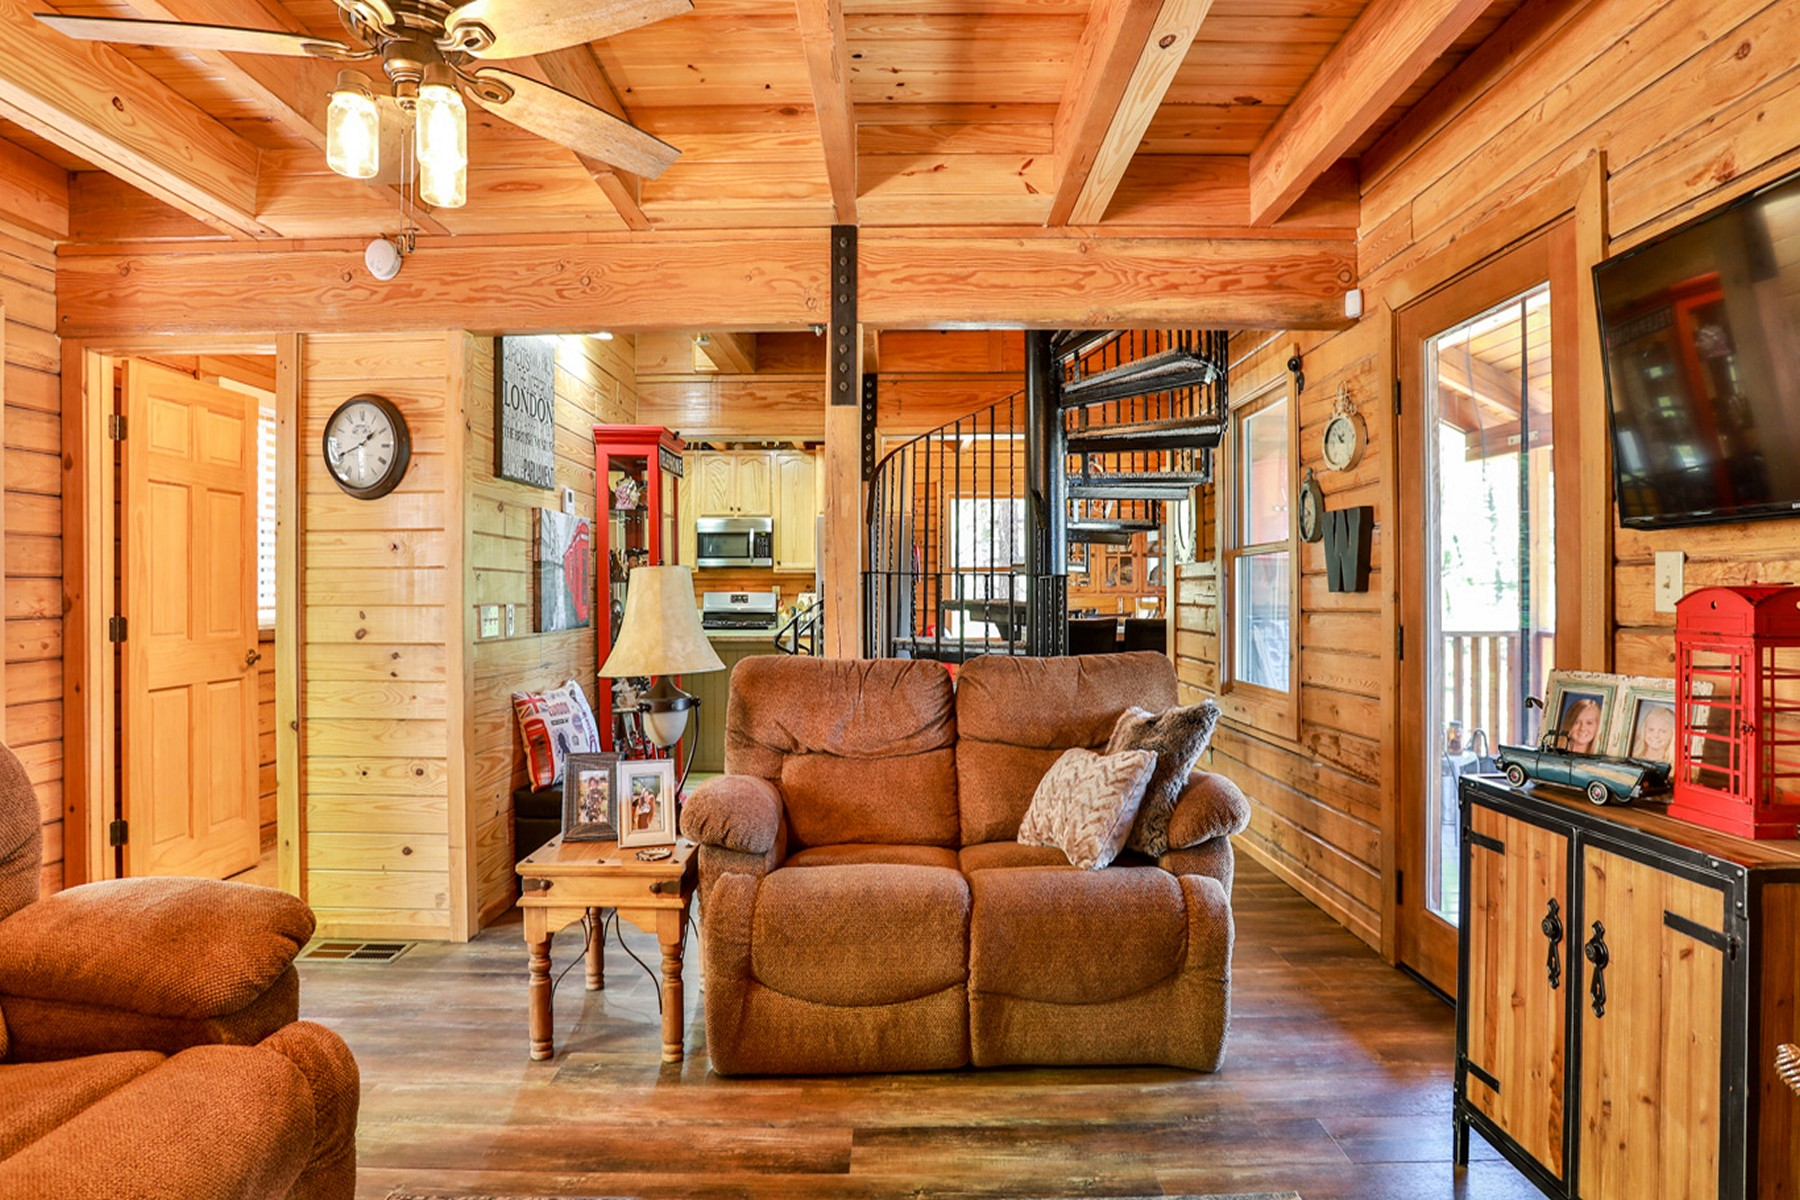 Single Family Homes for Sale at 1844 Shay Road Big Bear City, CA 92314 1844 Shay Road Big Bear City, California 92314 United States